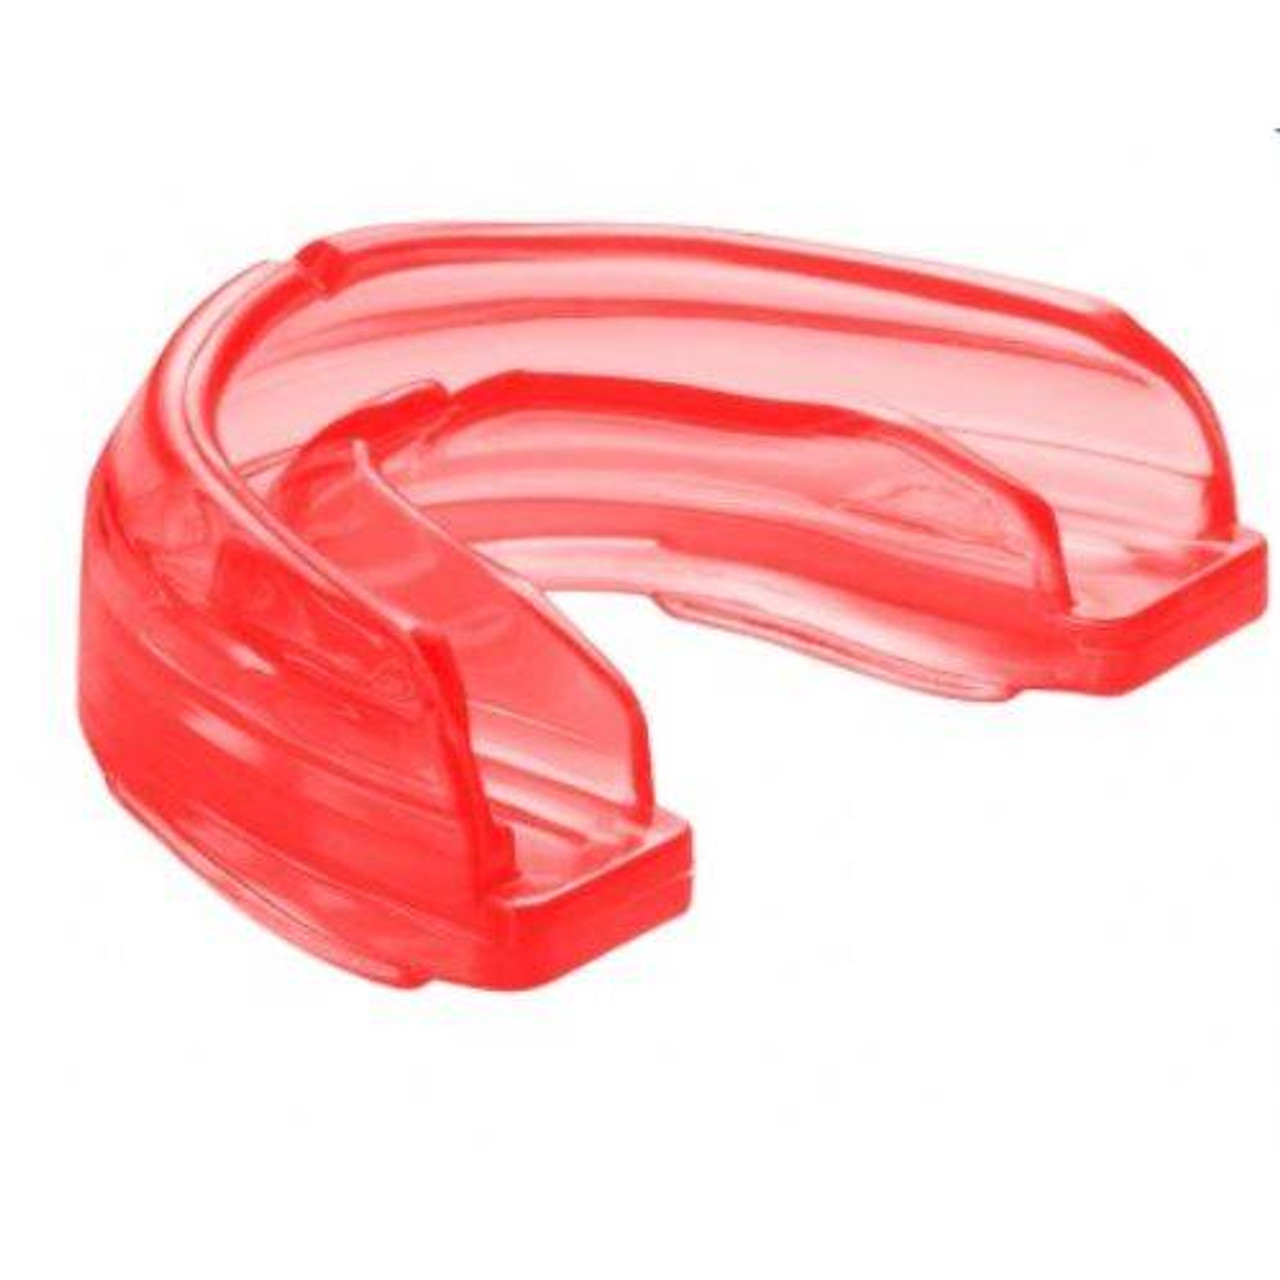 Shock Dr. Mouthguard for Braces Without Strap